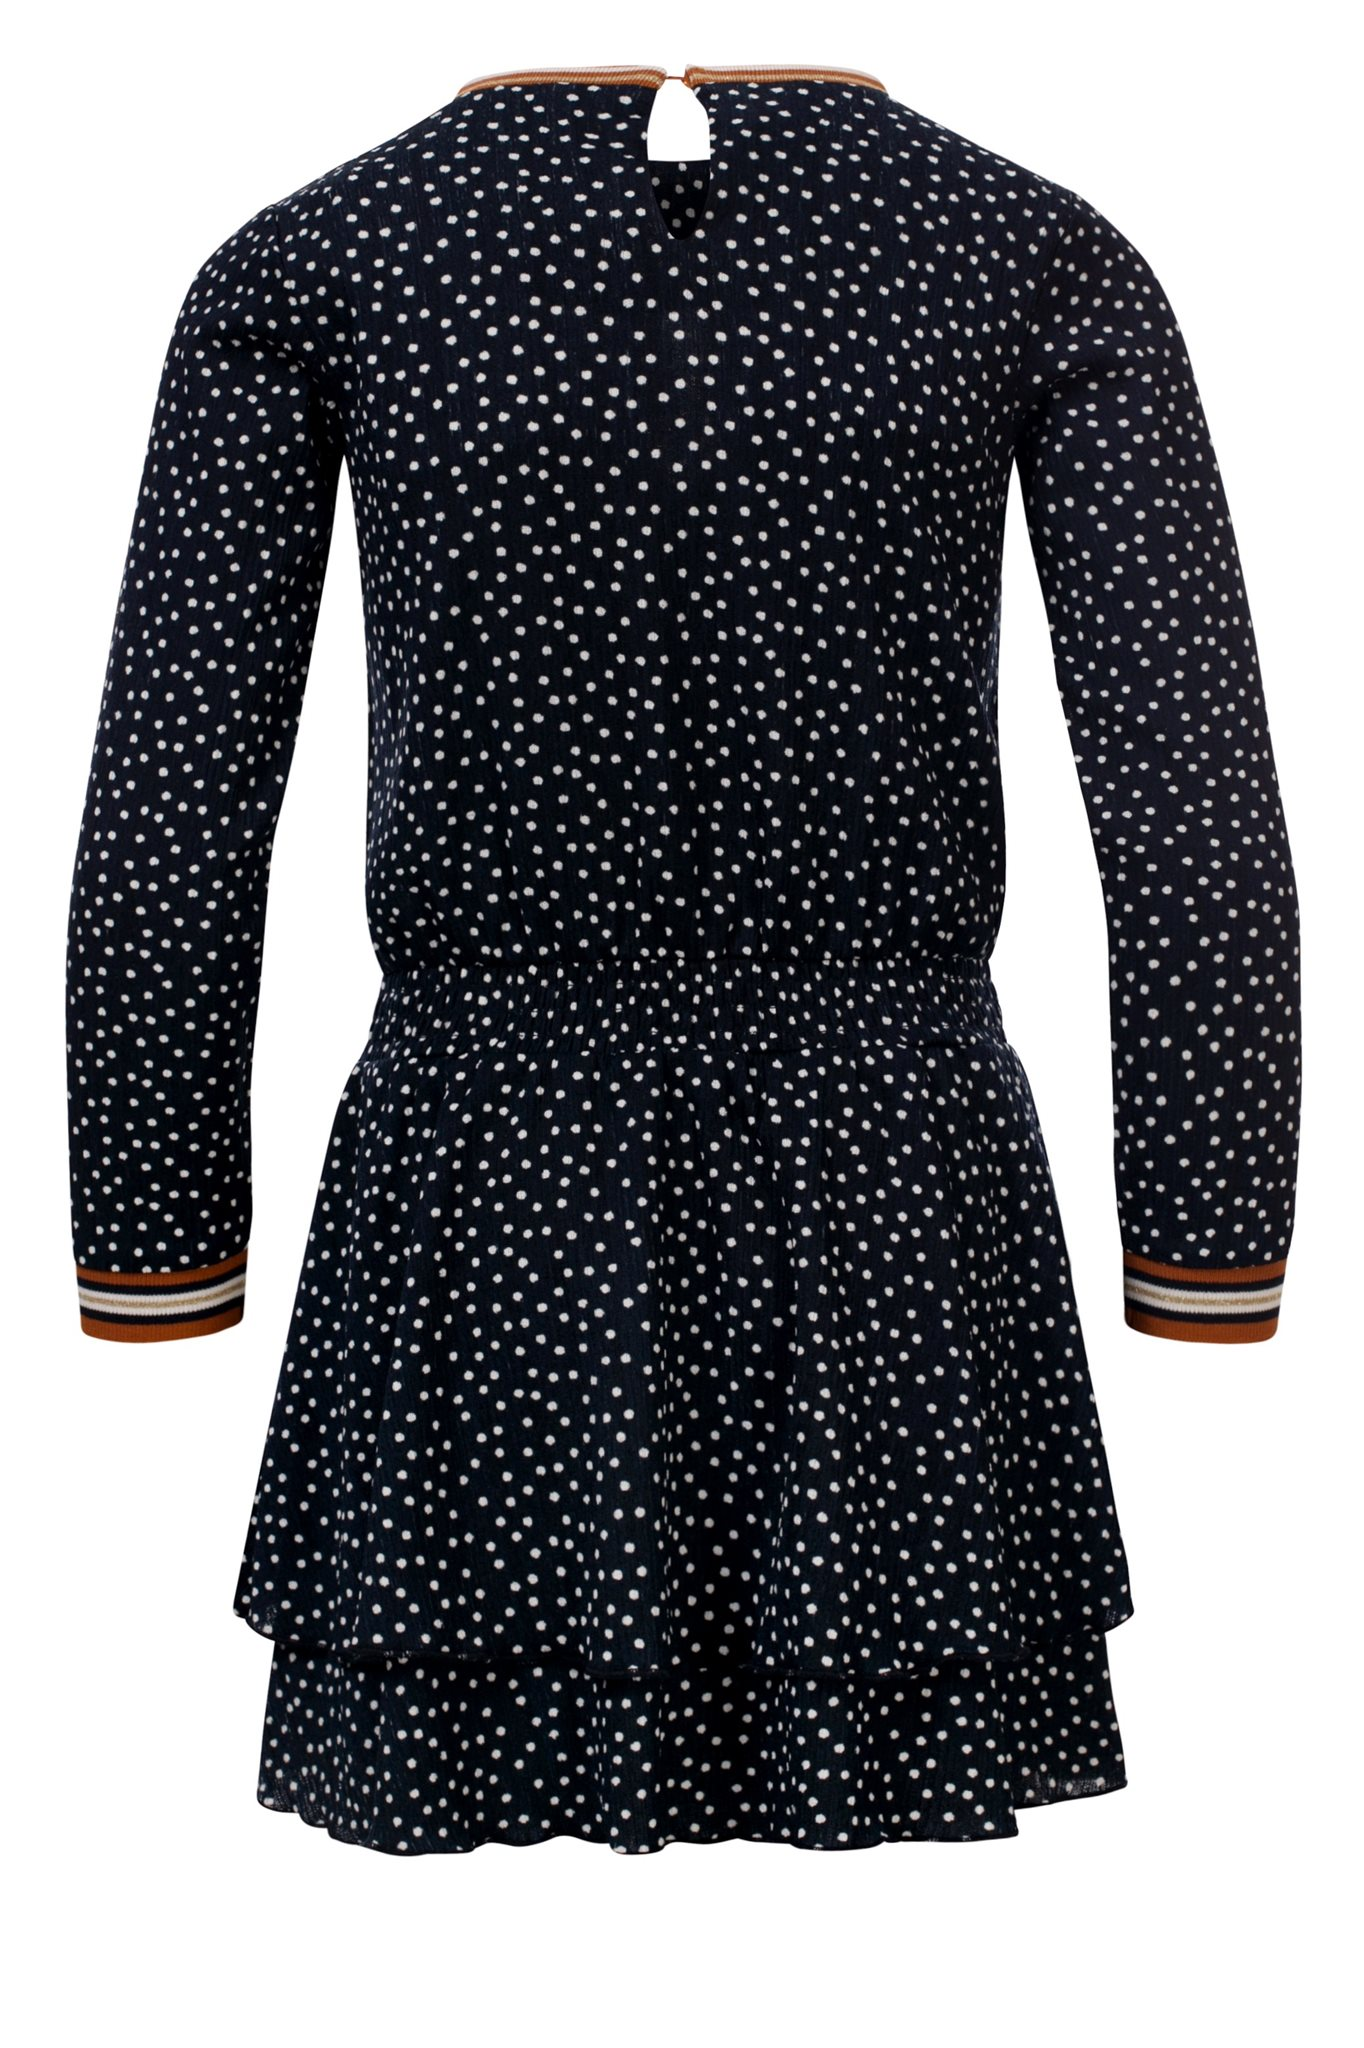 Little Looxs navy dot dress